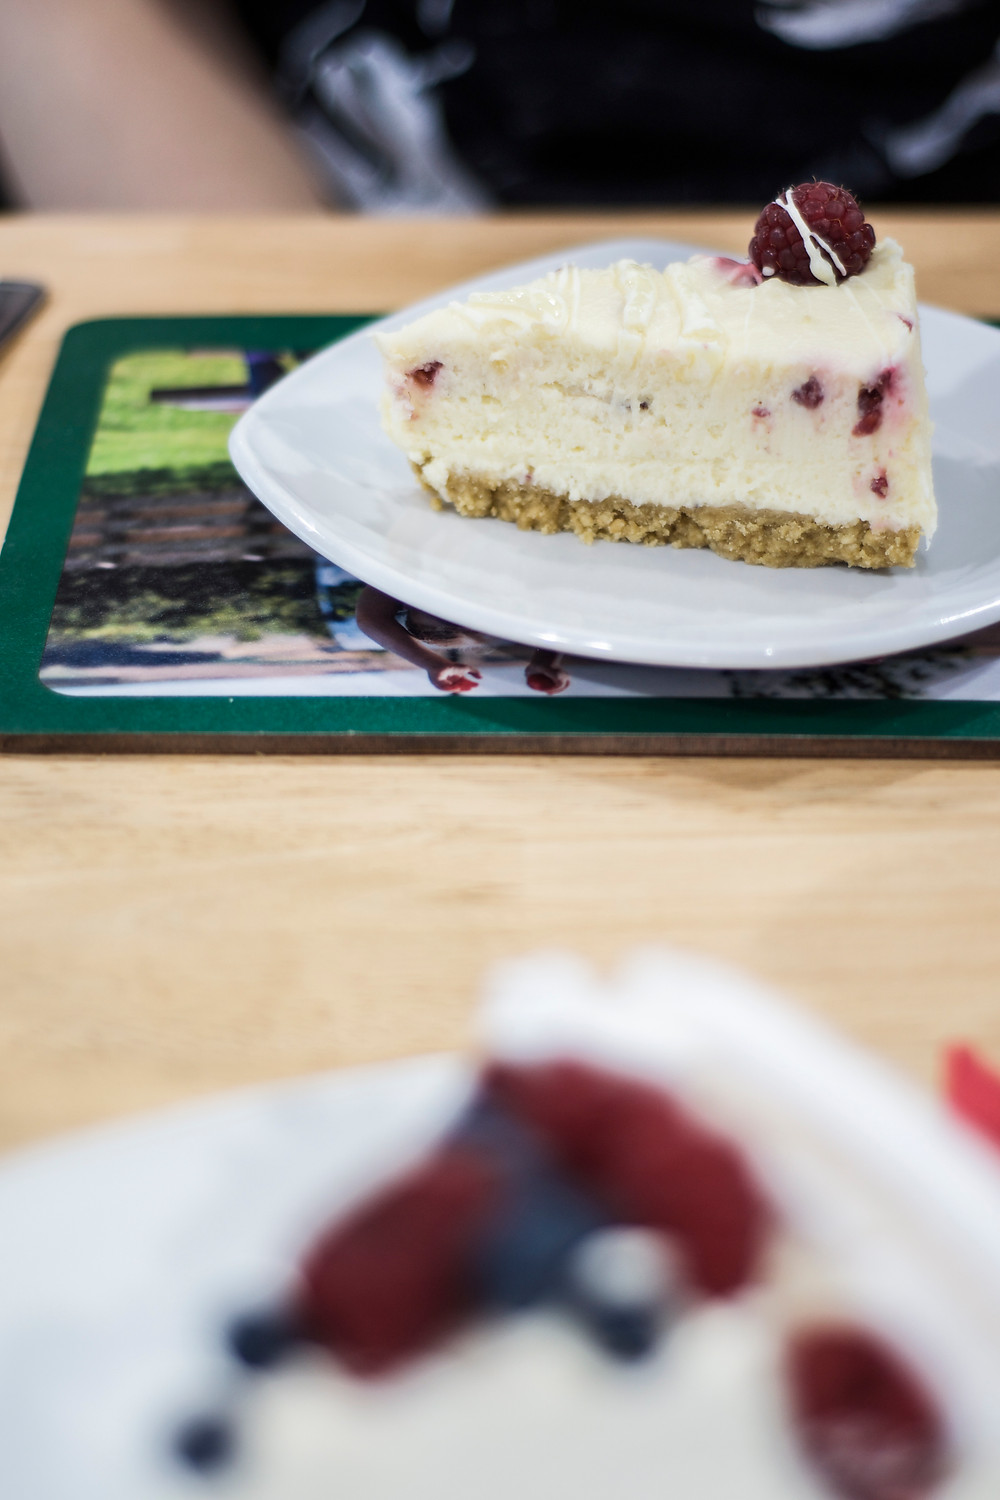 Delicious fresh scottish berry cheesecake at Castleton Farm, Aberdeenshire